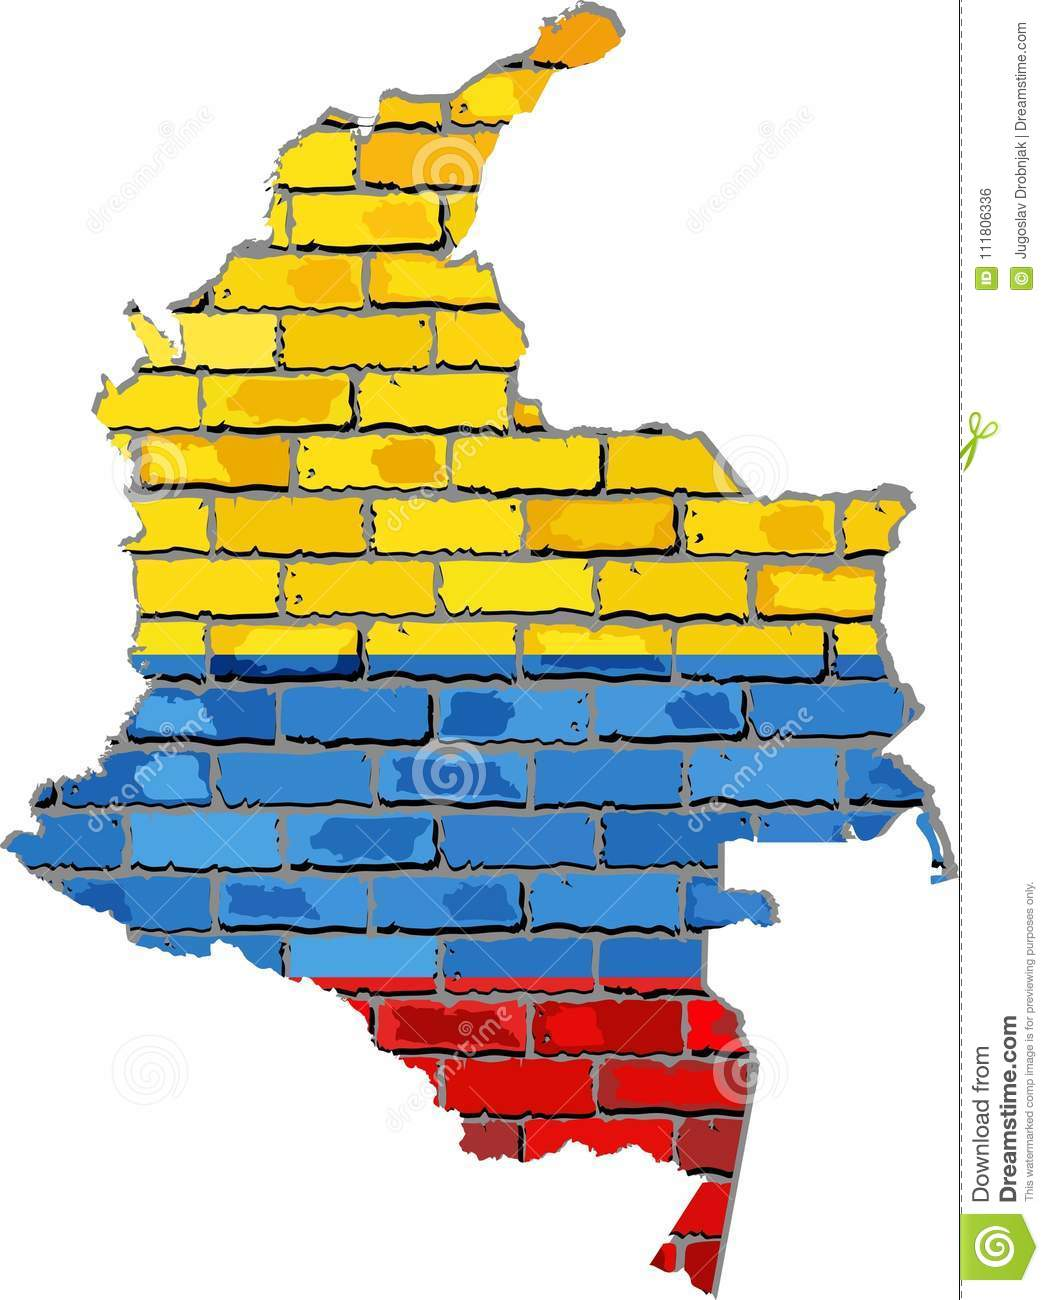 Colombia Map On A Brick Wall Stock Vector - Illustration of ...